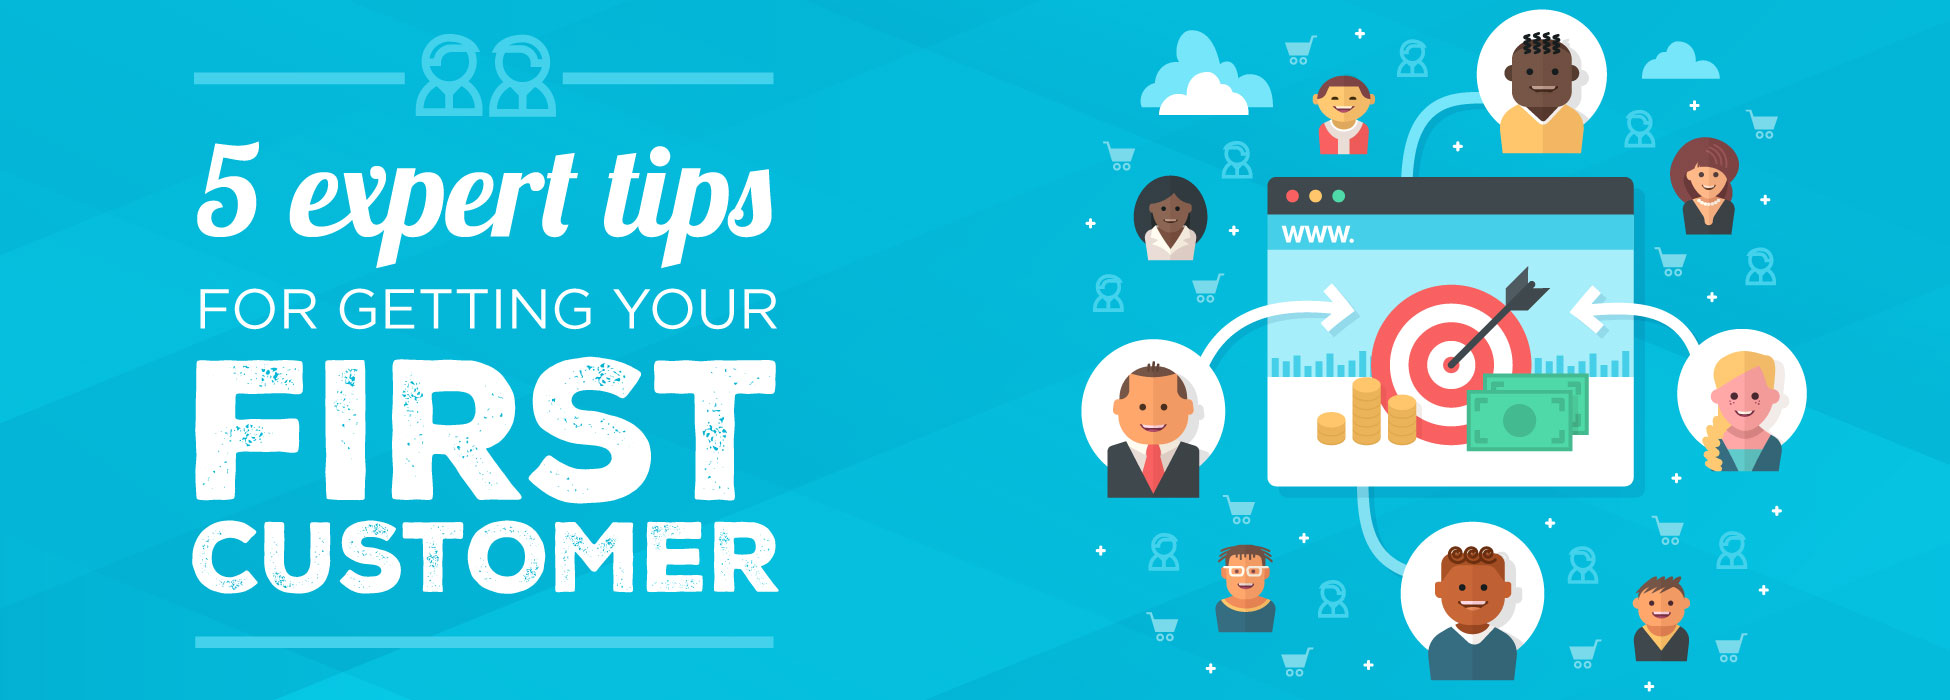 5 expert tips for getting your first customer